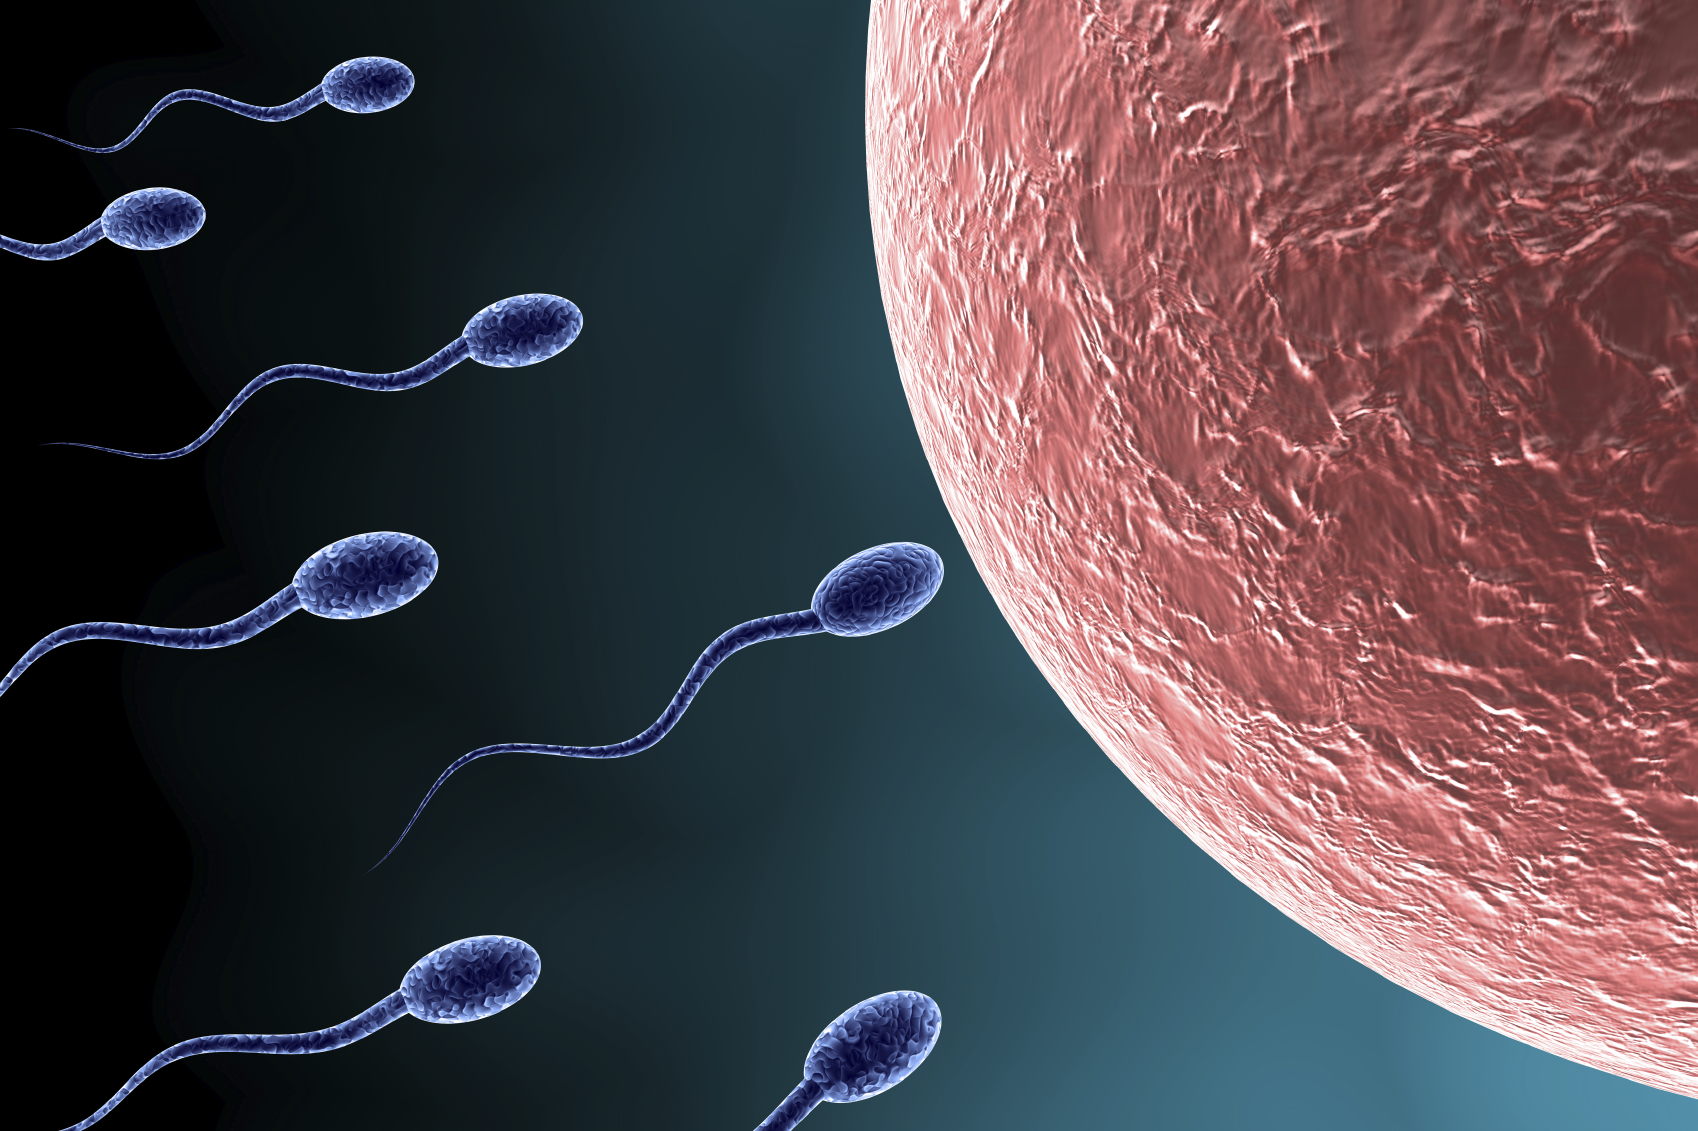 Infertility counseling for IVF, donor eggs, donor sperm, donor embryos, surrogacy.